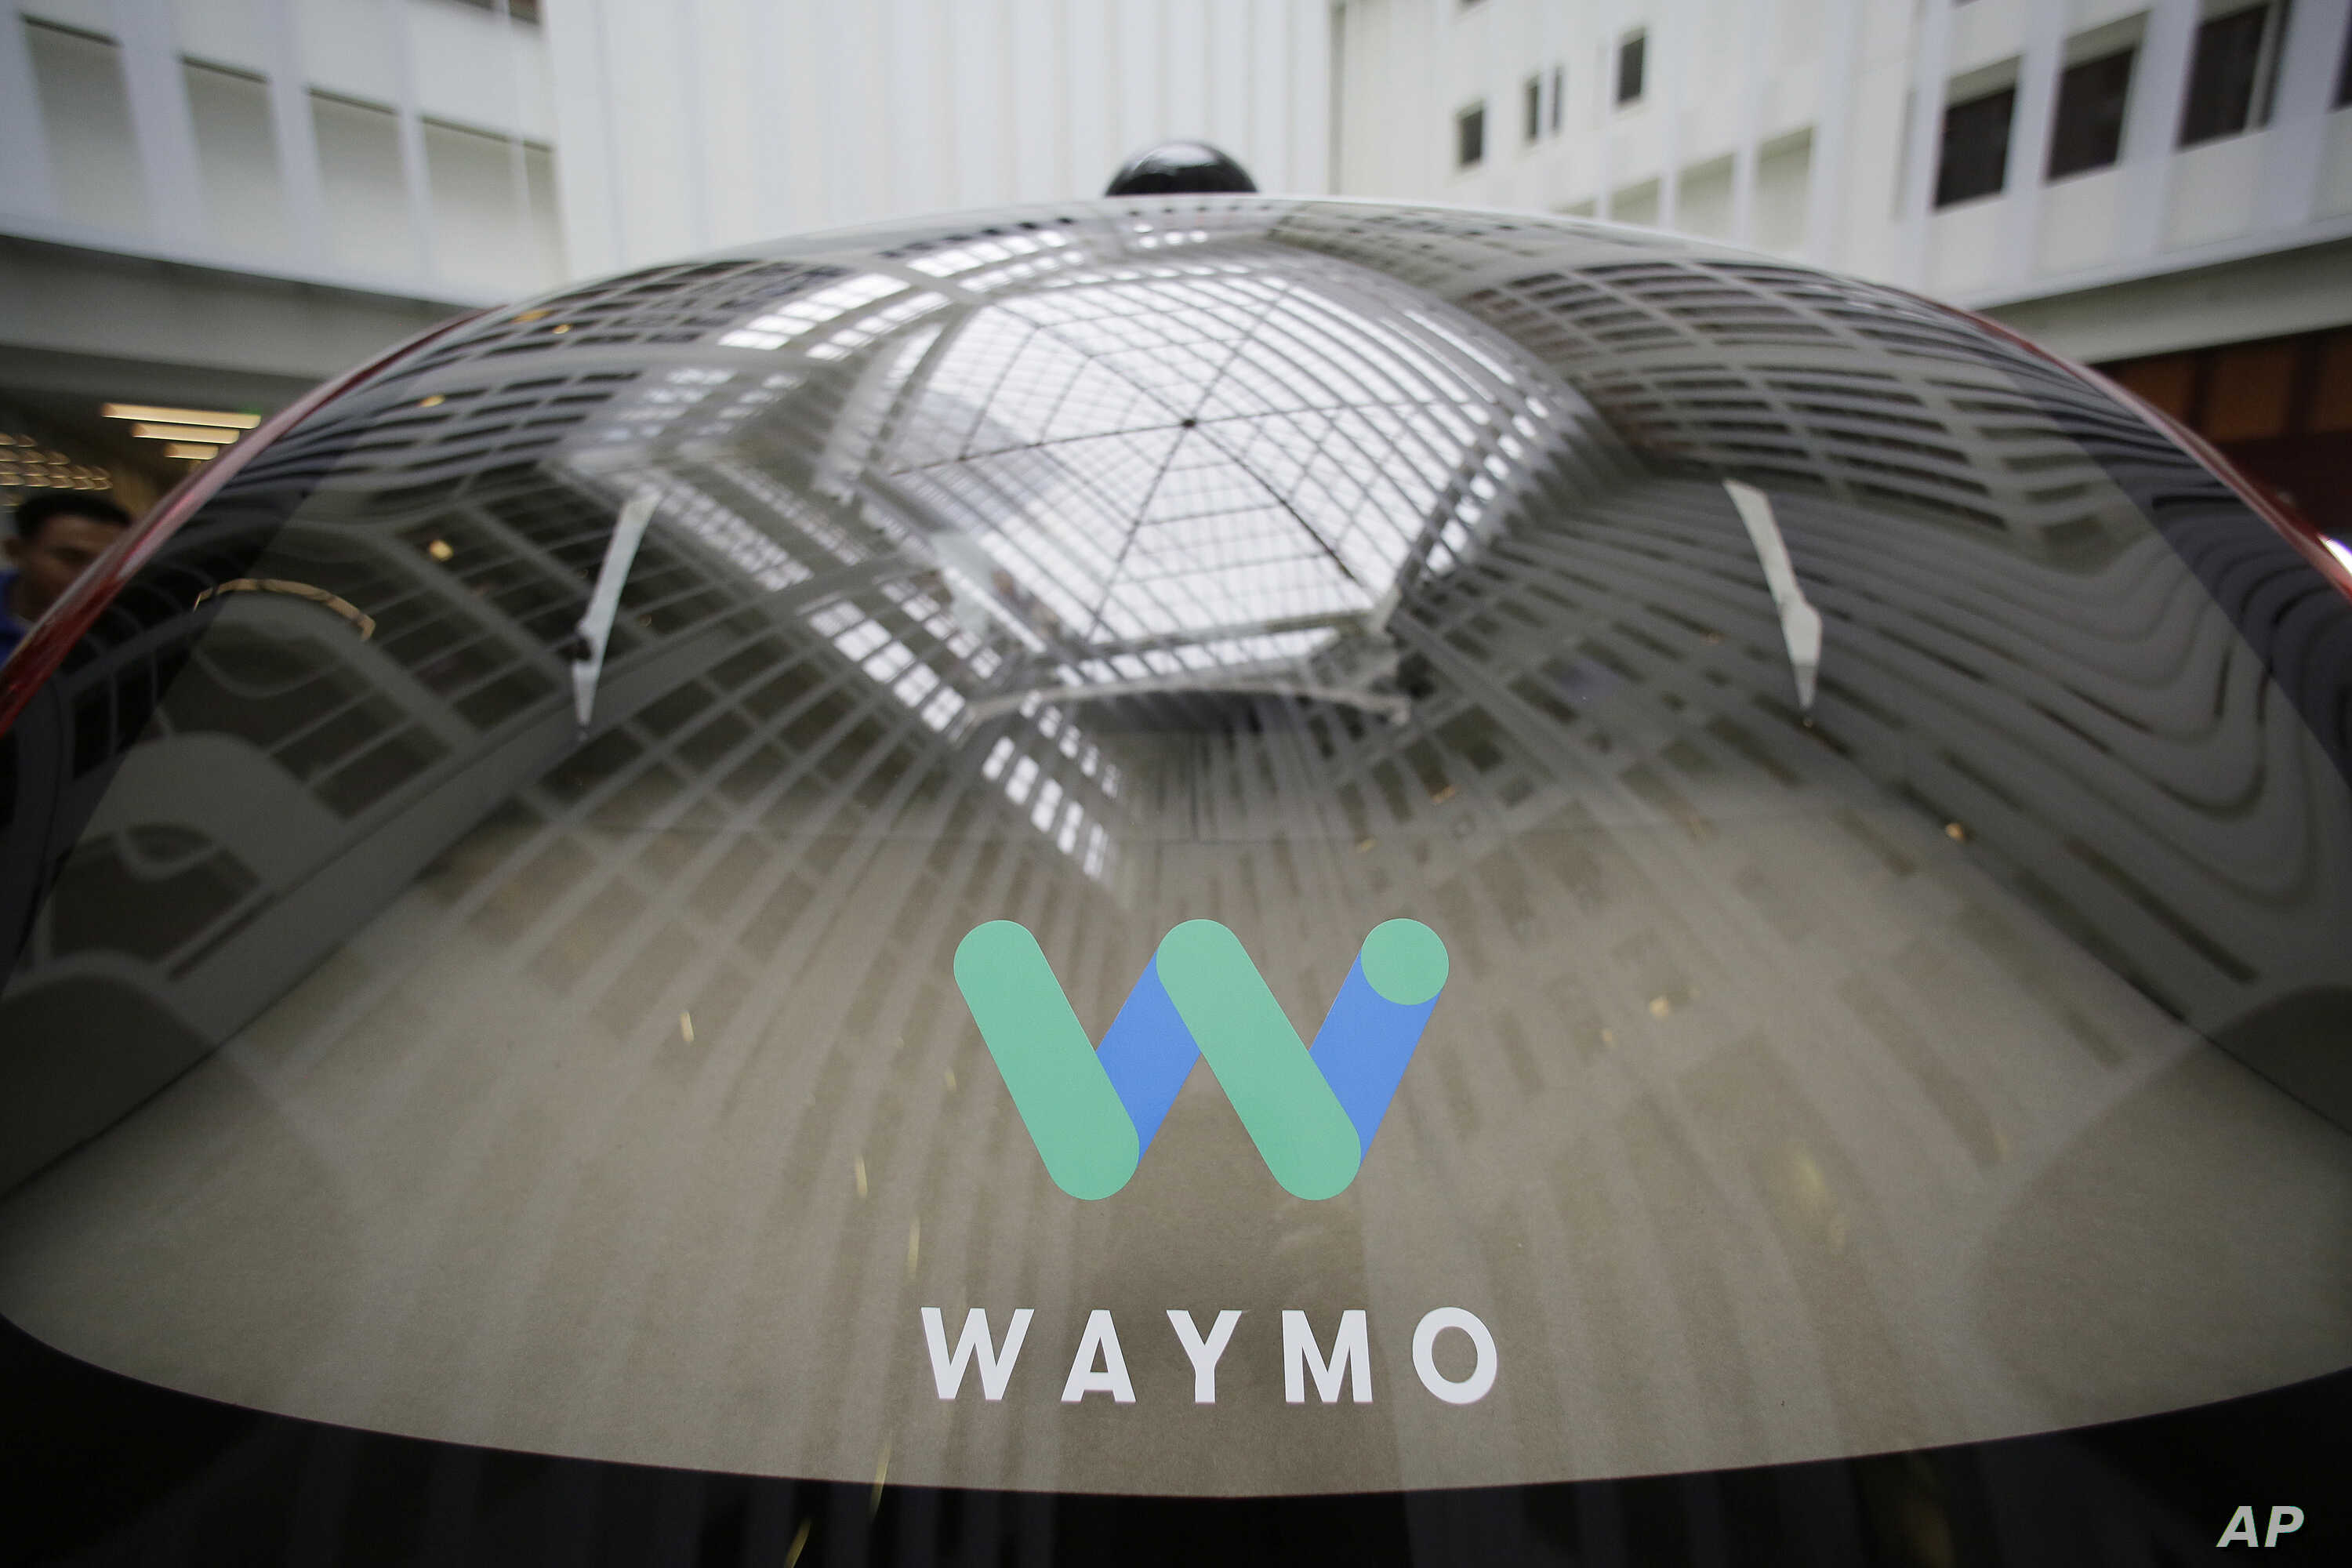 Waymo, Lyft Take on Uber with Rides in Self-Driving Car